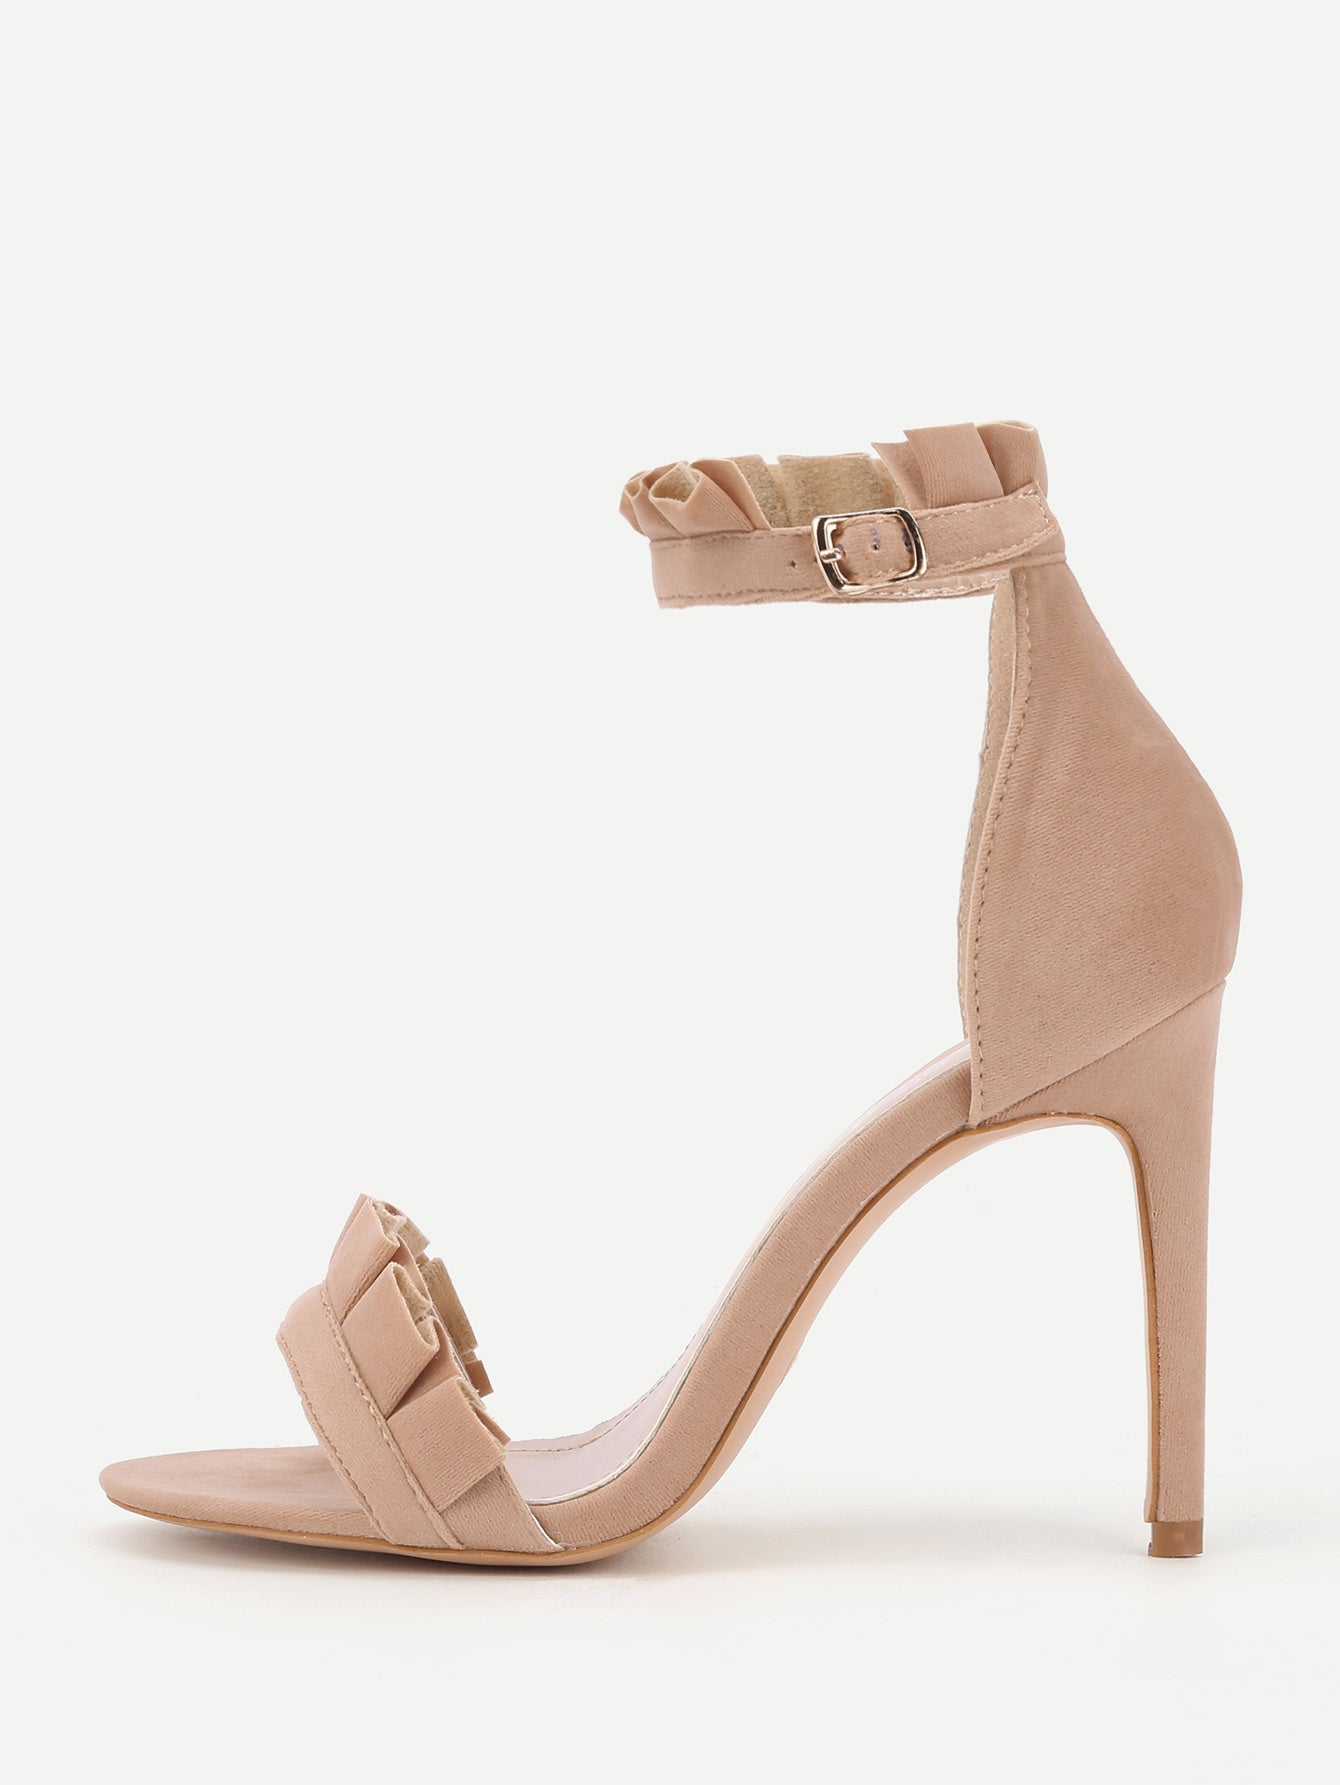 Pleated Trim Design High Sandal Heels